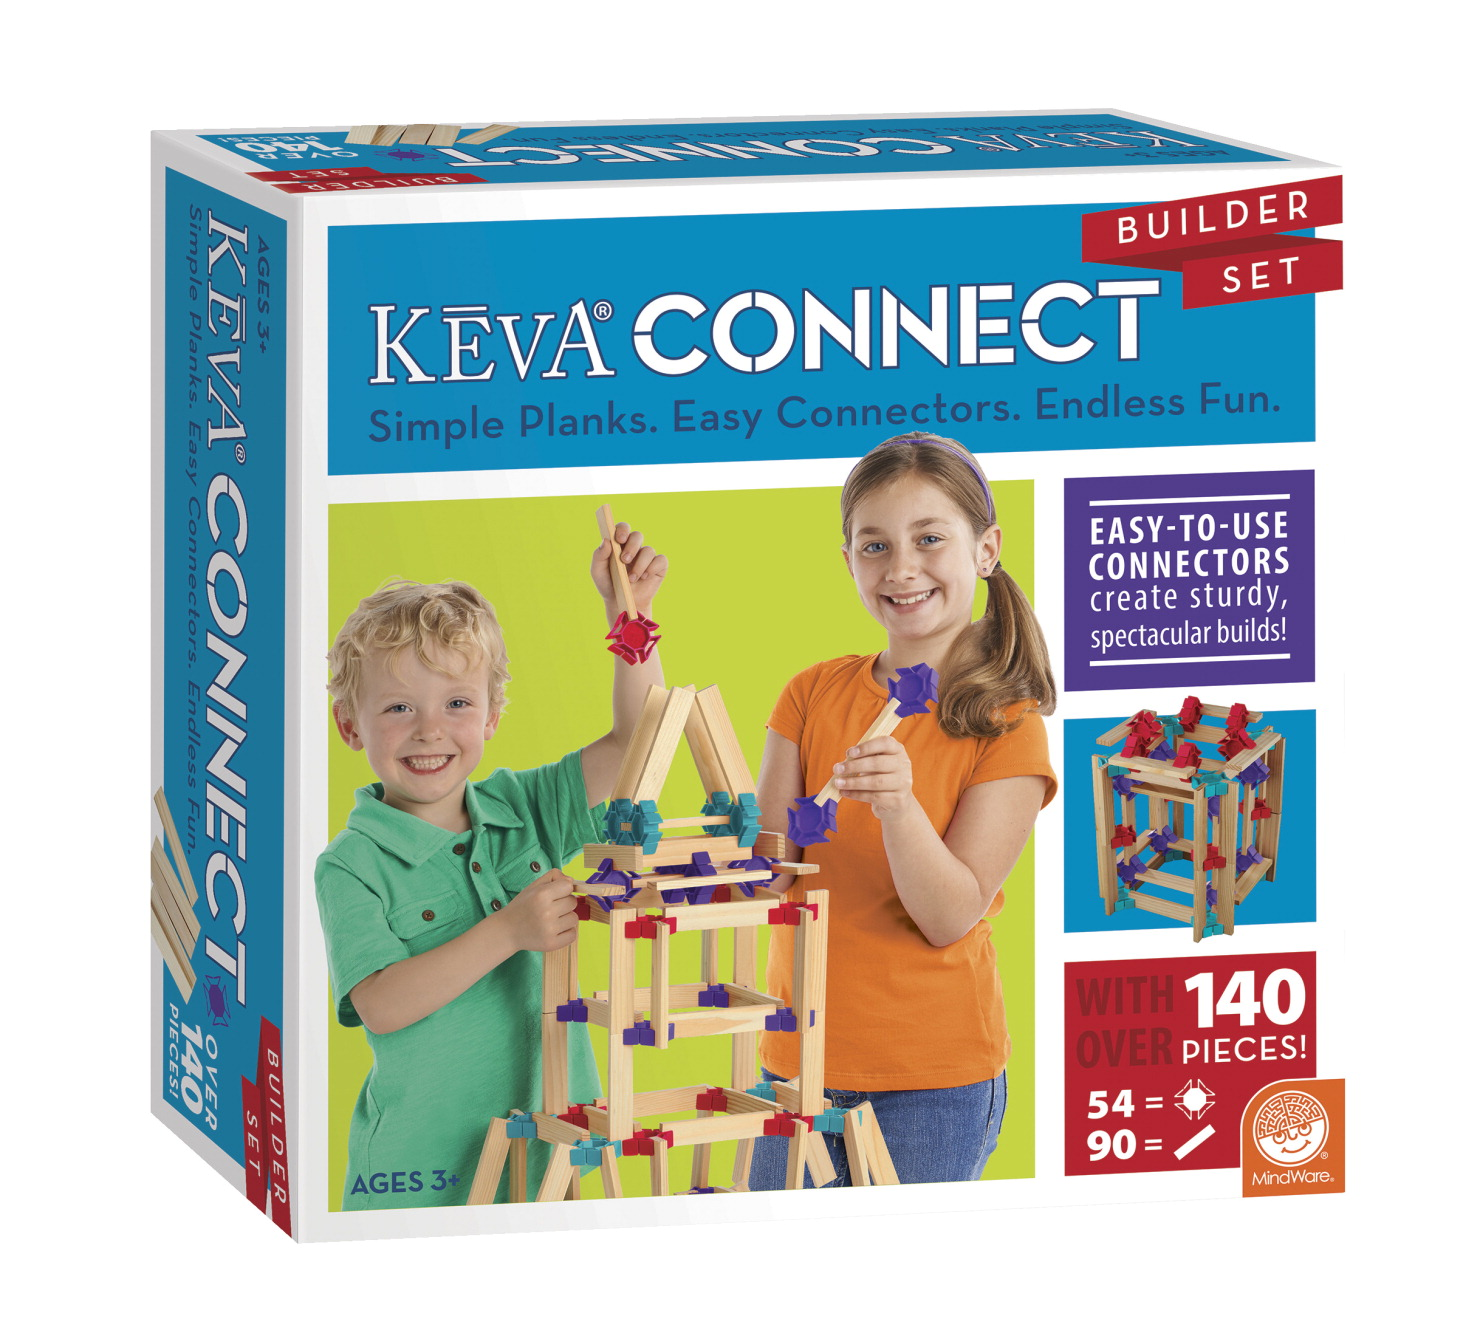 Mindware KEVA Connect Builder Set, 144 Pieces